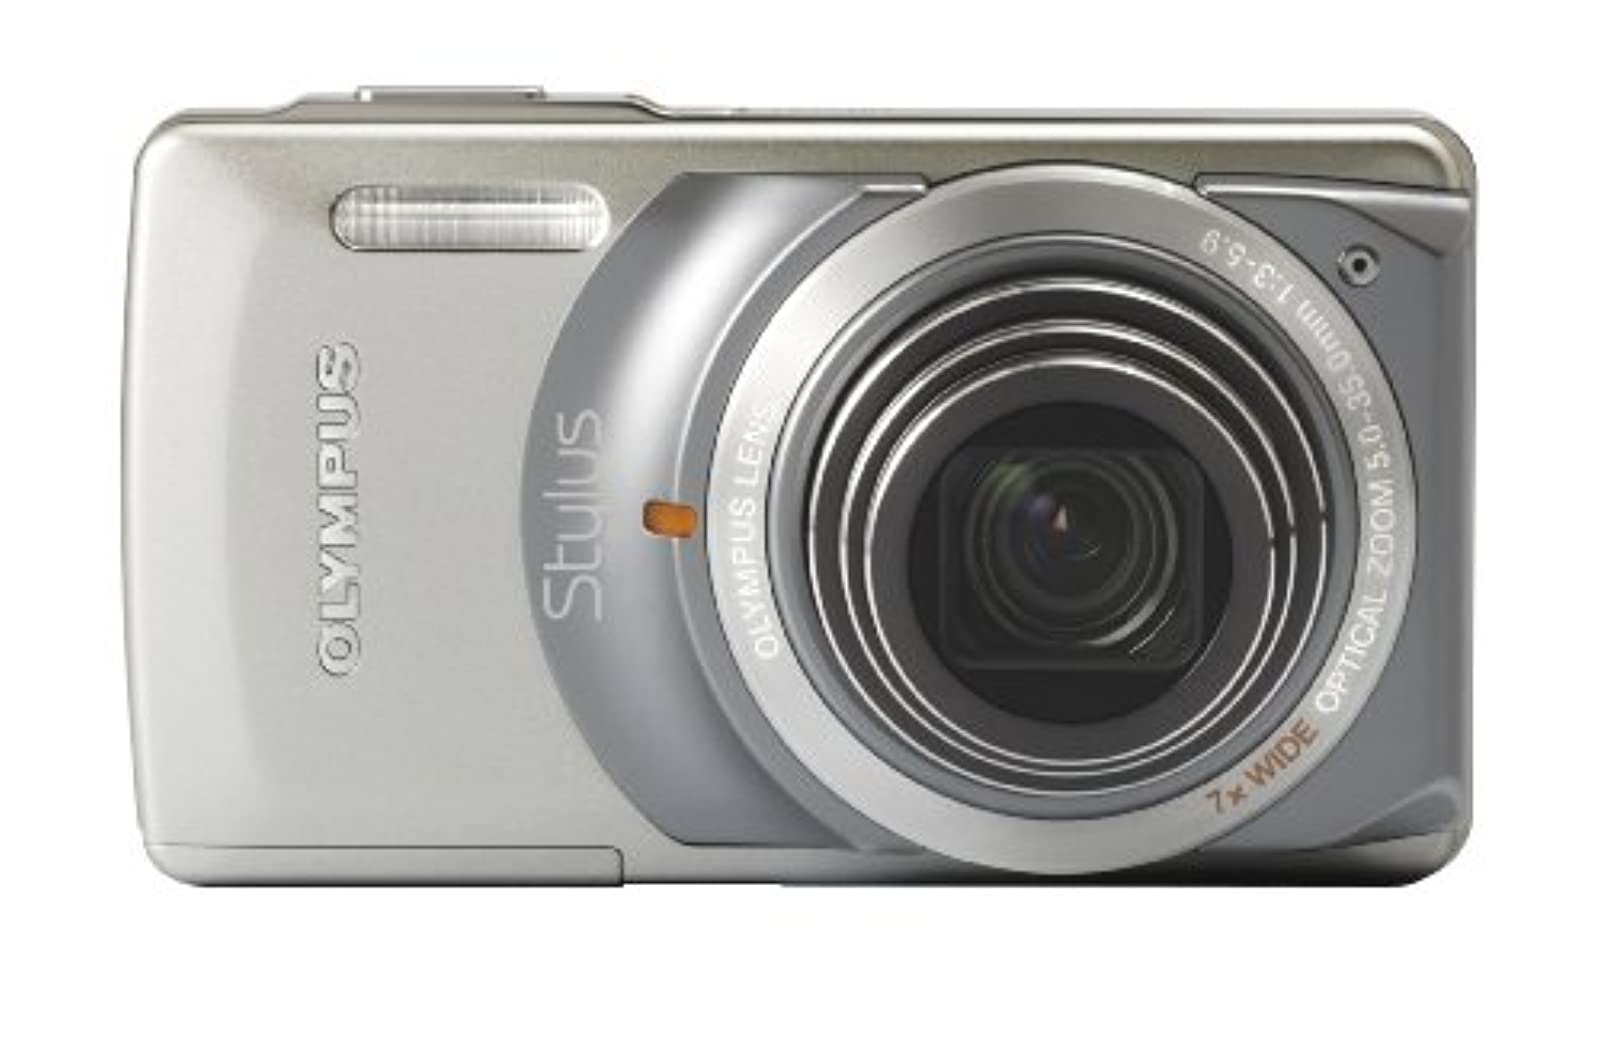 Olympus Stylus 7010 12MP Digital Camera With 7X Dual Image Stabilized Zoom And 2